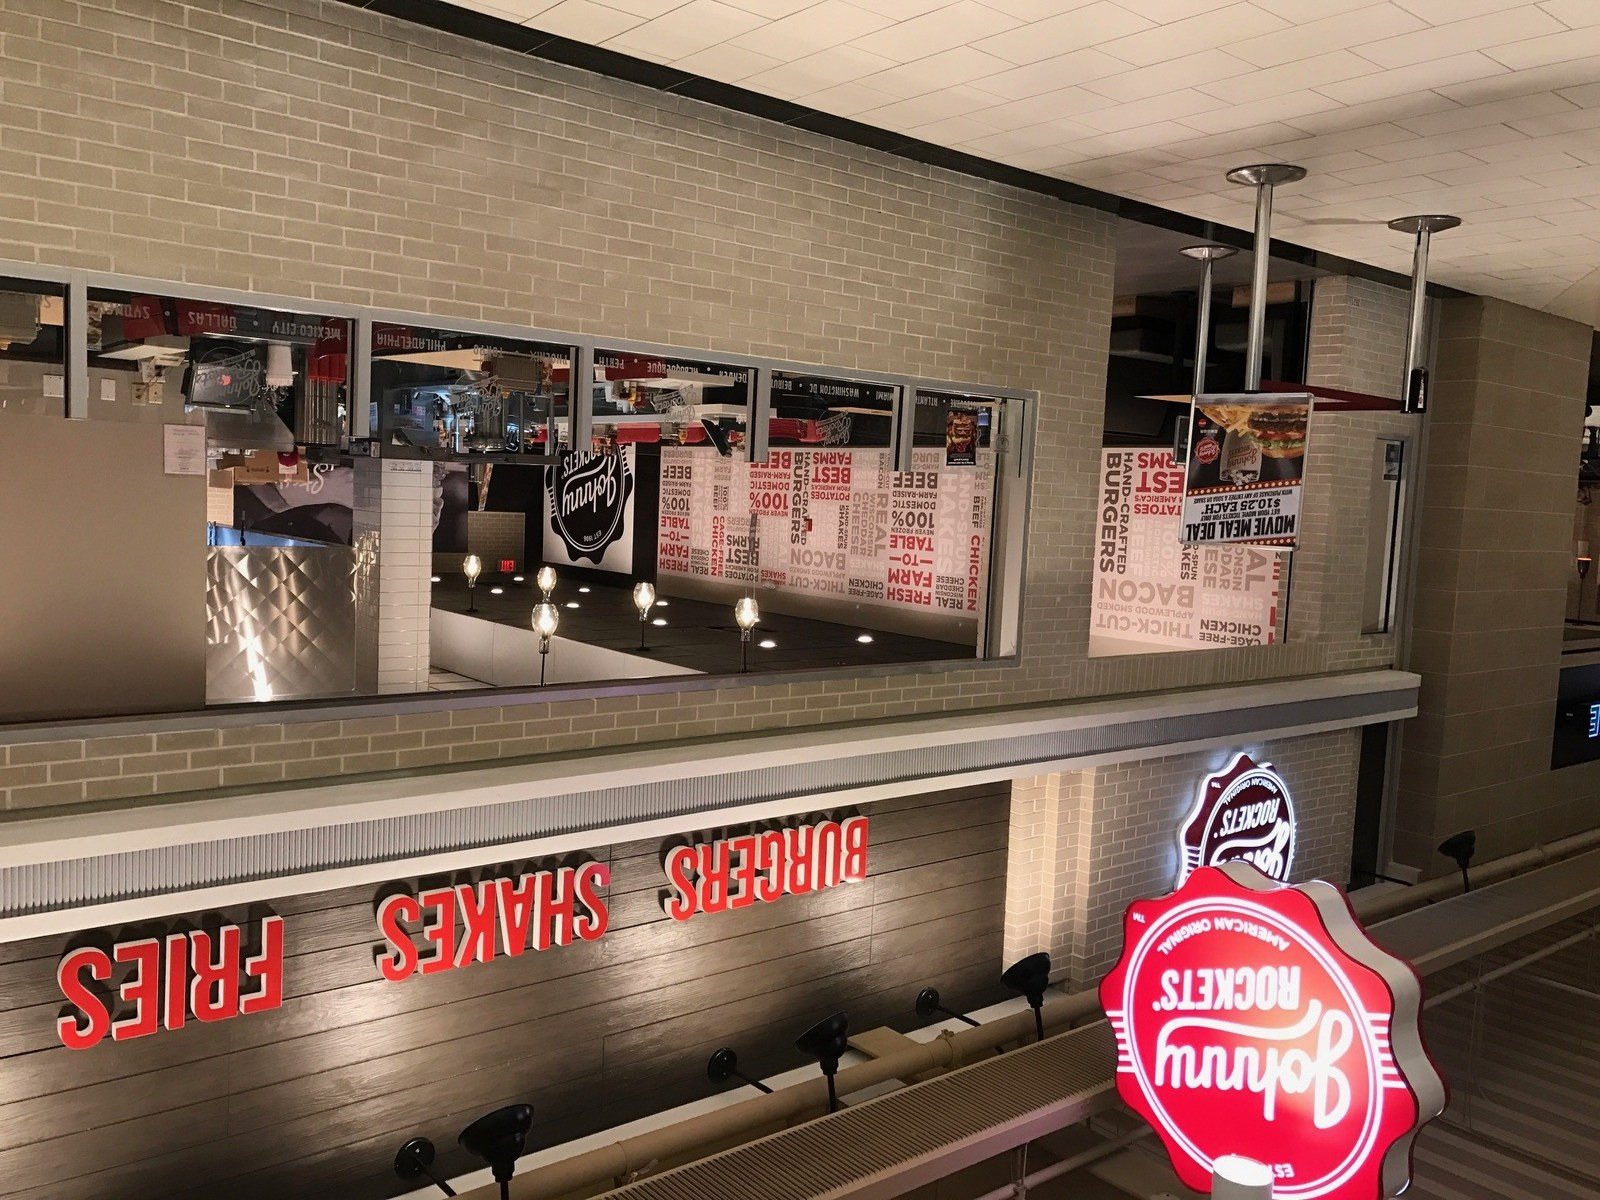 Now Open! Johnny Rockets Has a Whole New Look and Experience at the Palisades Center Mall in West Nyack, NY